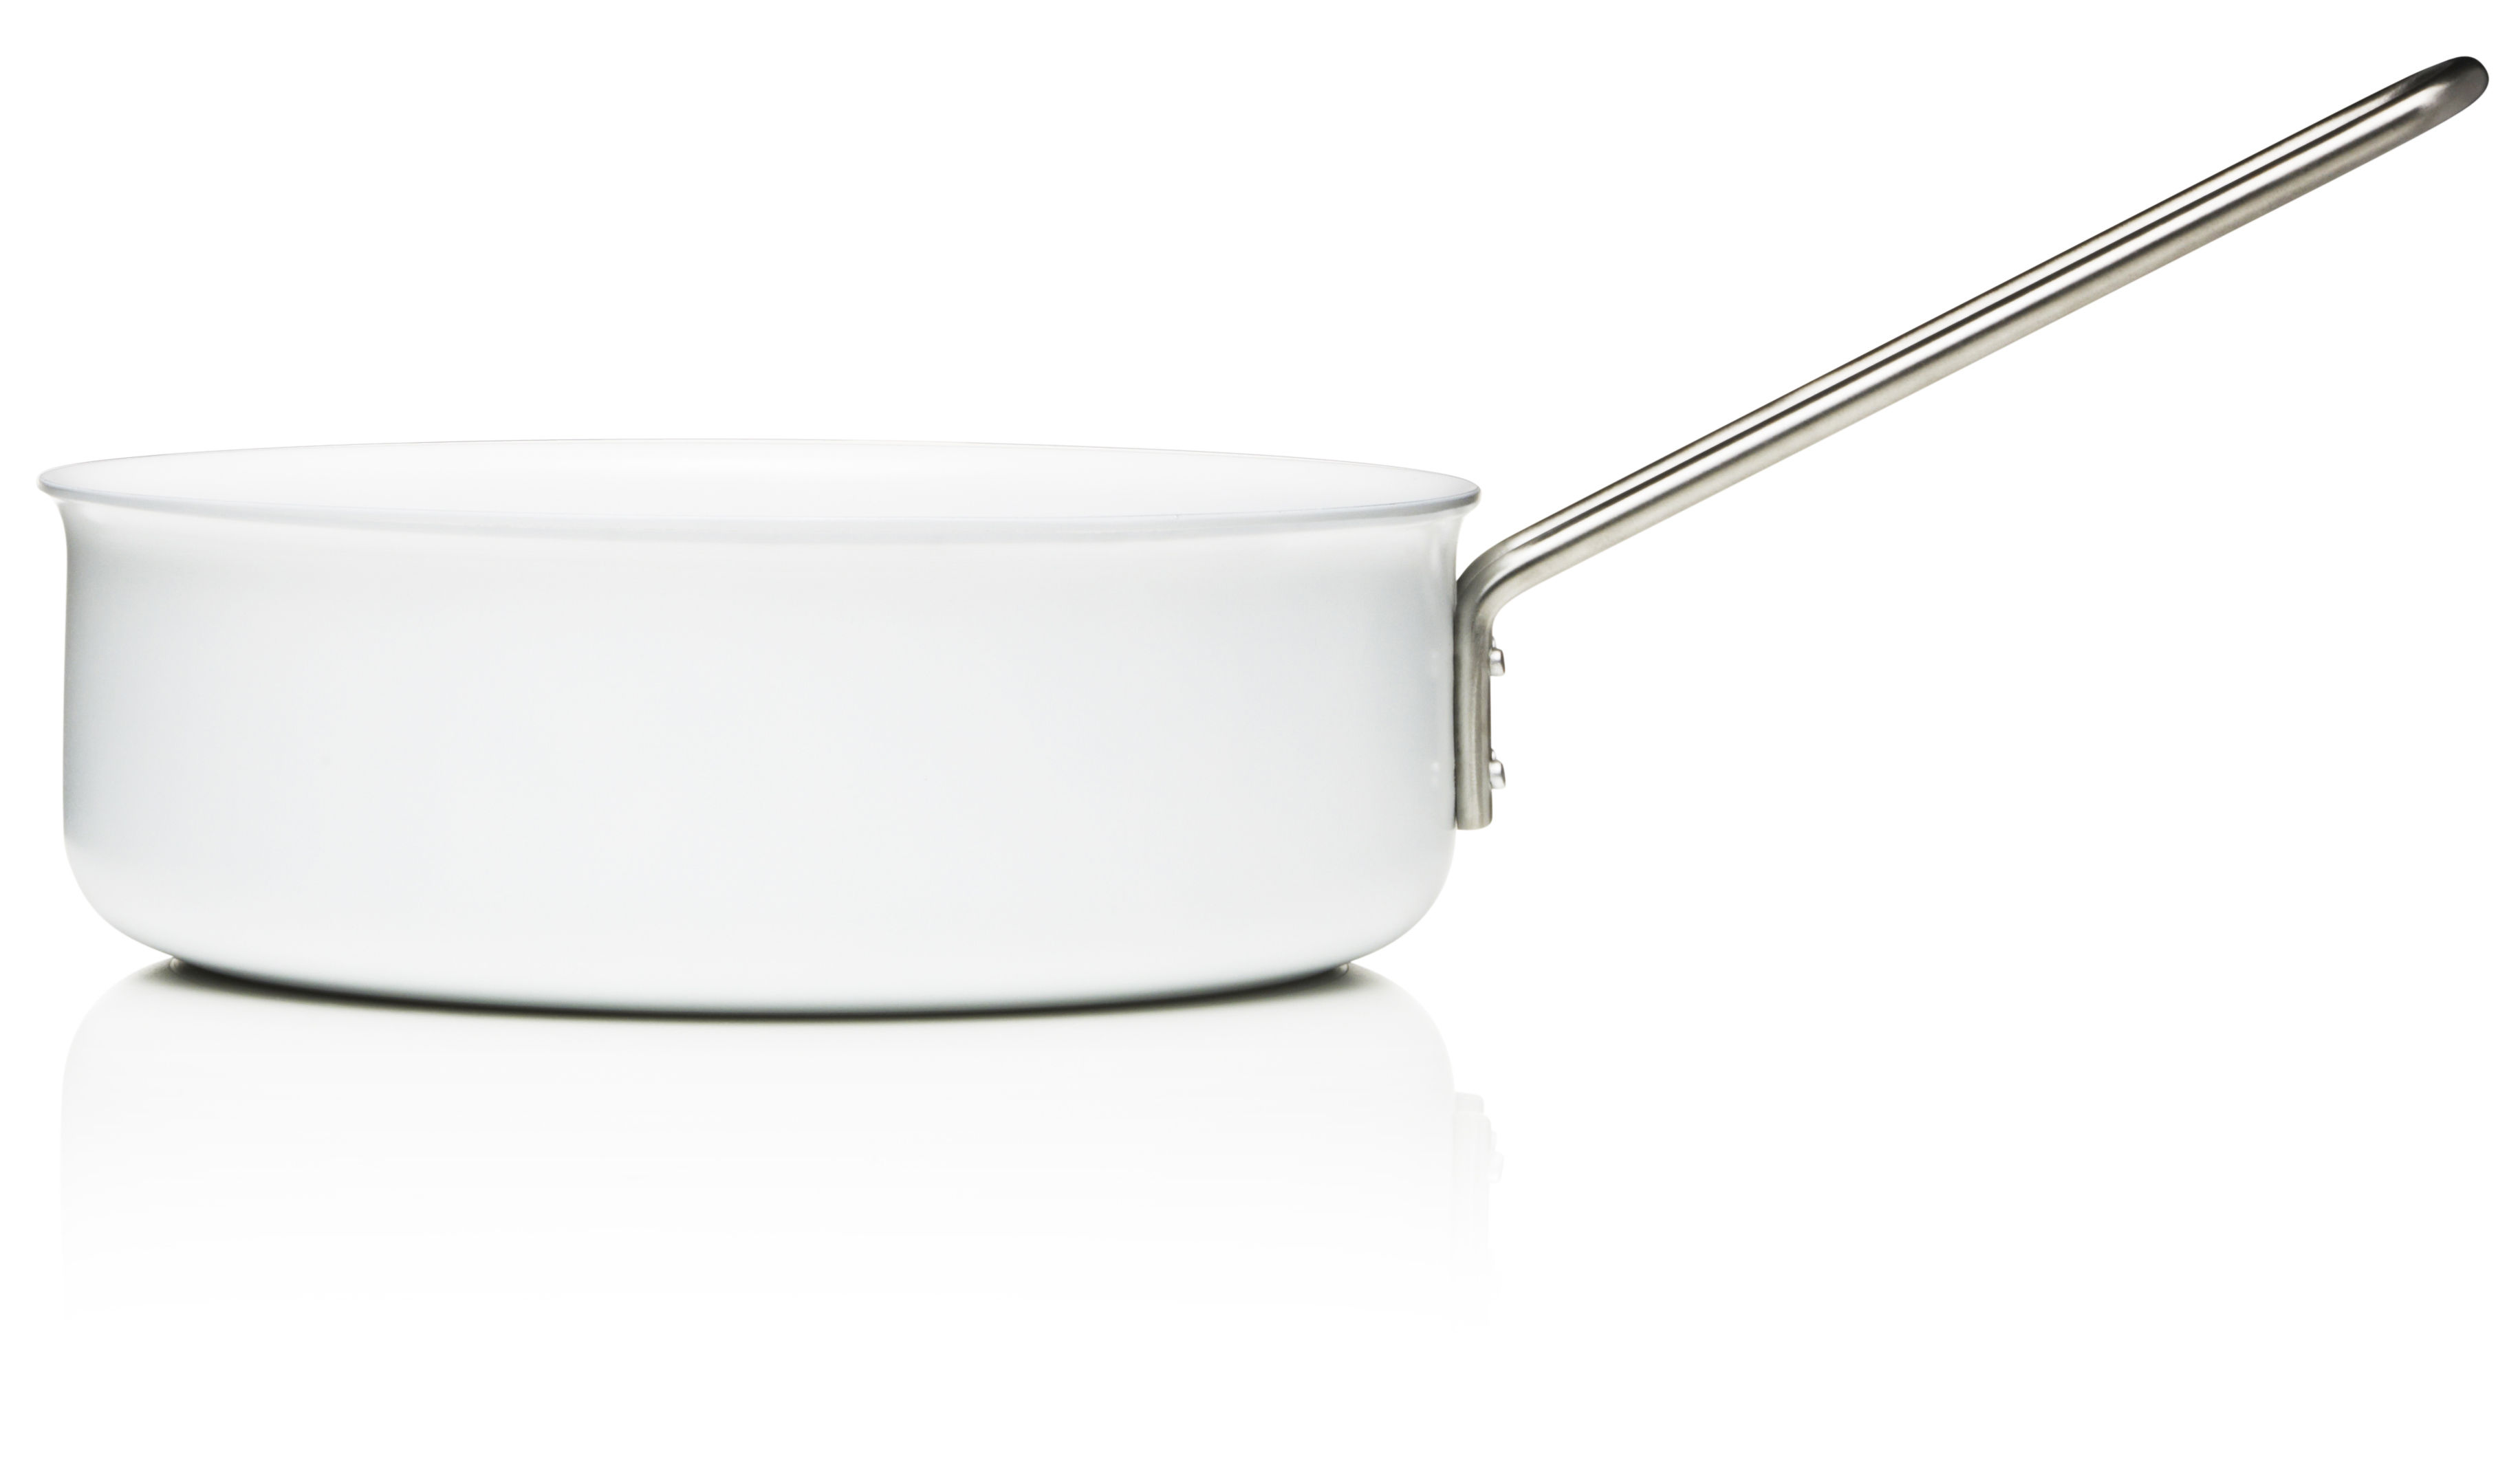 Kitchenware - Pots & Pans - White Line Casserole - Ø 24 cm - Web exclusivity by Eva Trio - White - Aluminium, Ceramic, Stainless steel